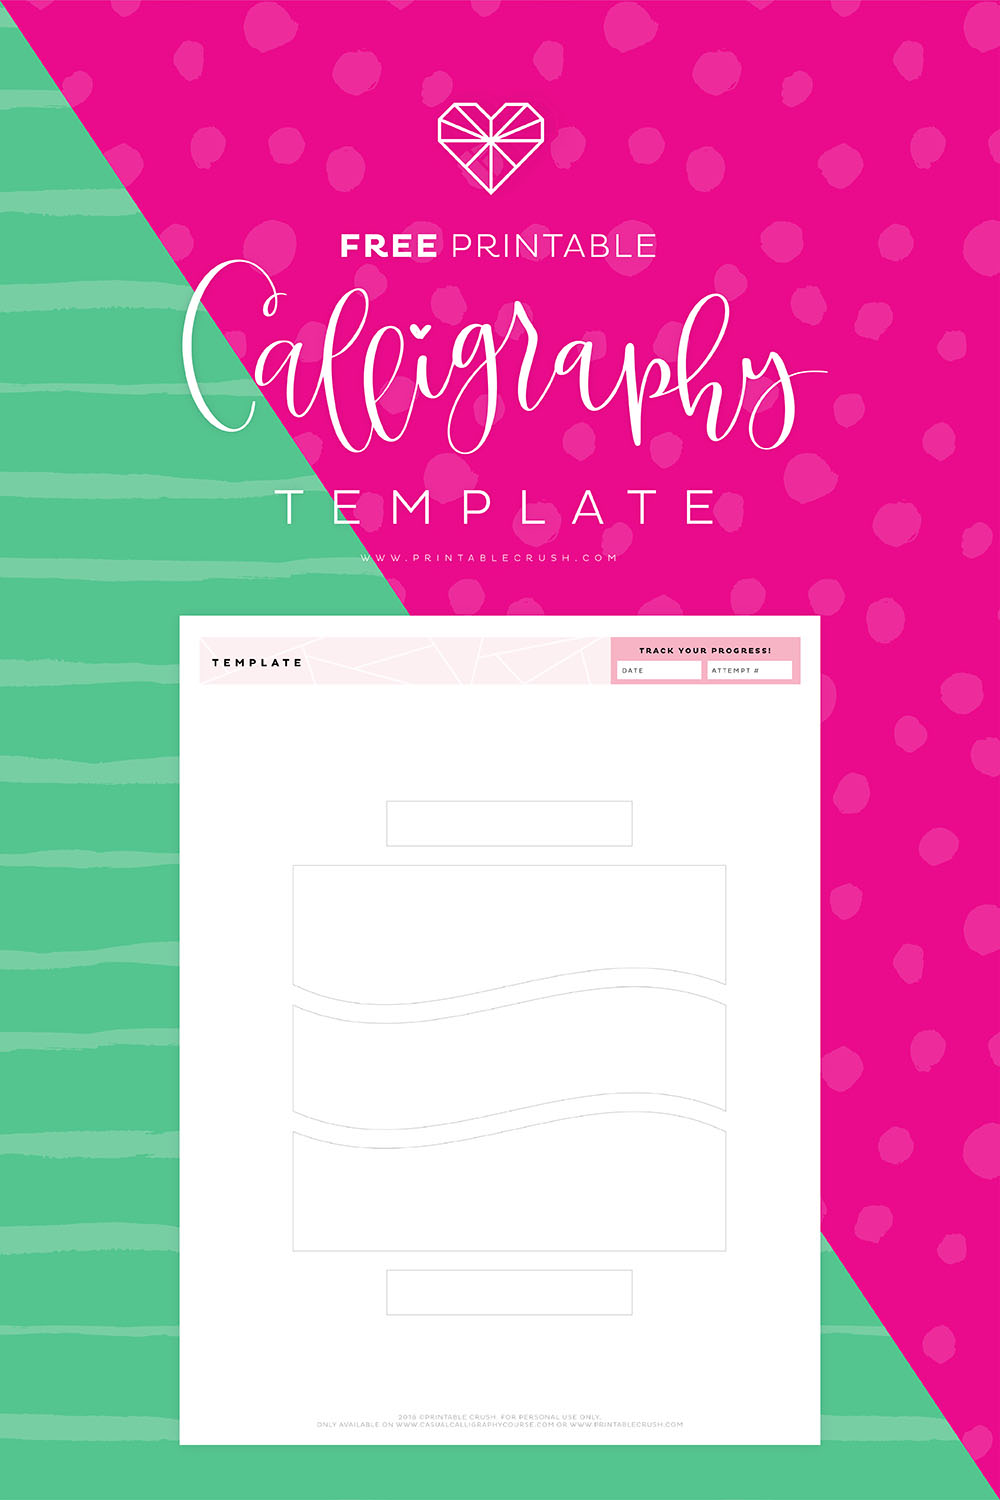 Free Printable Calligraphy Template Printable Crush